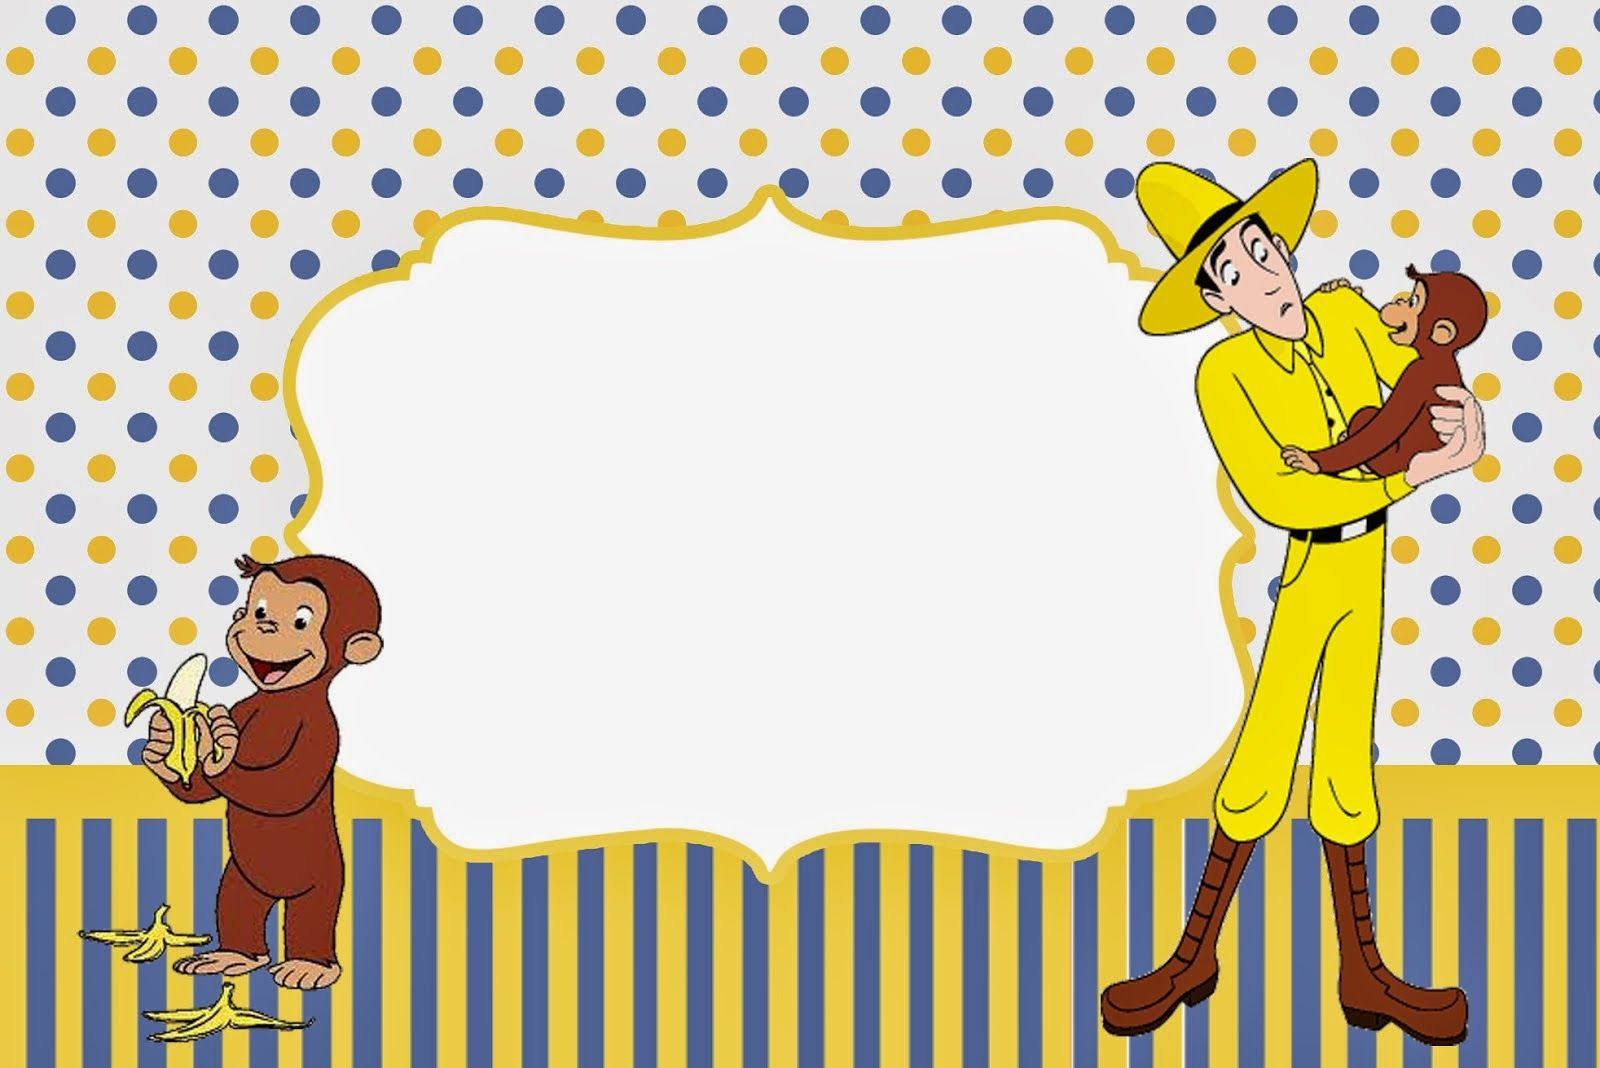 Curious George Free Printable Invitations. | Oh My Fiesta! in ...